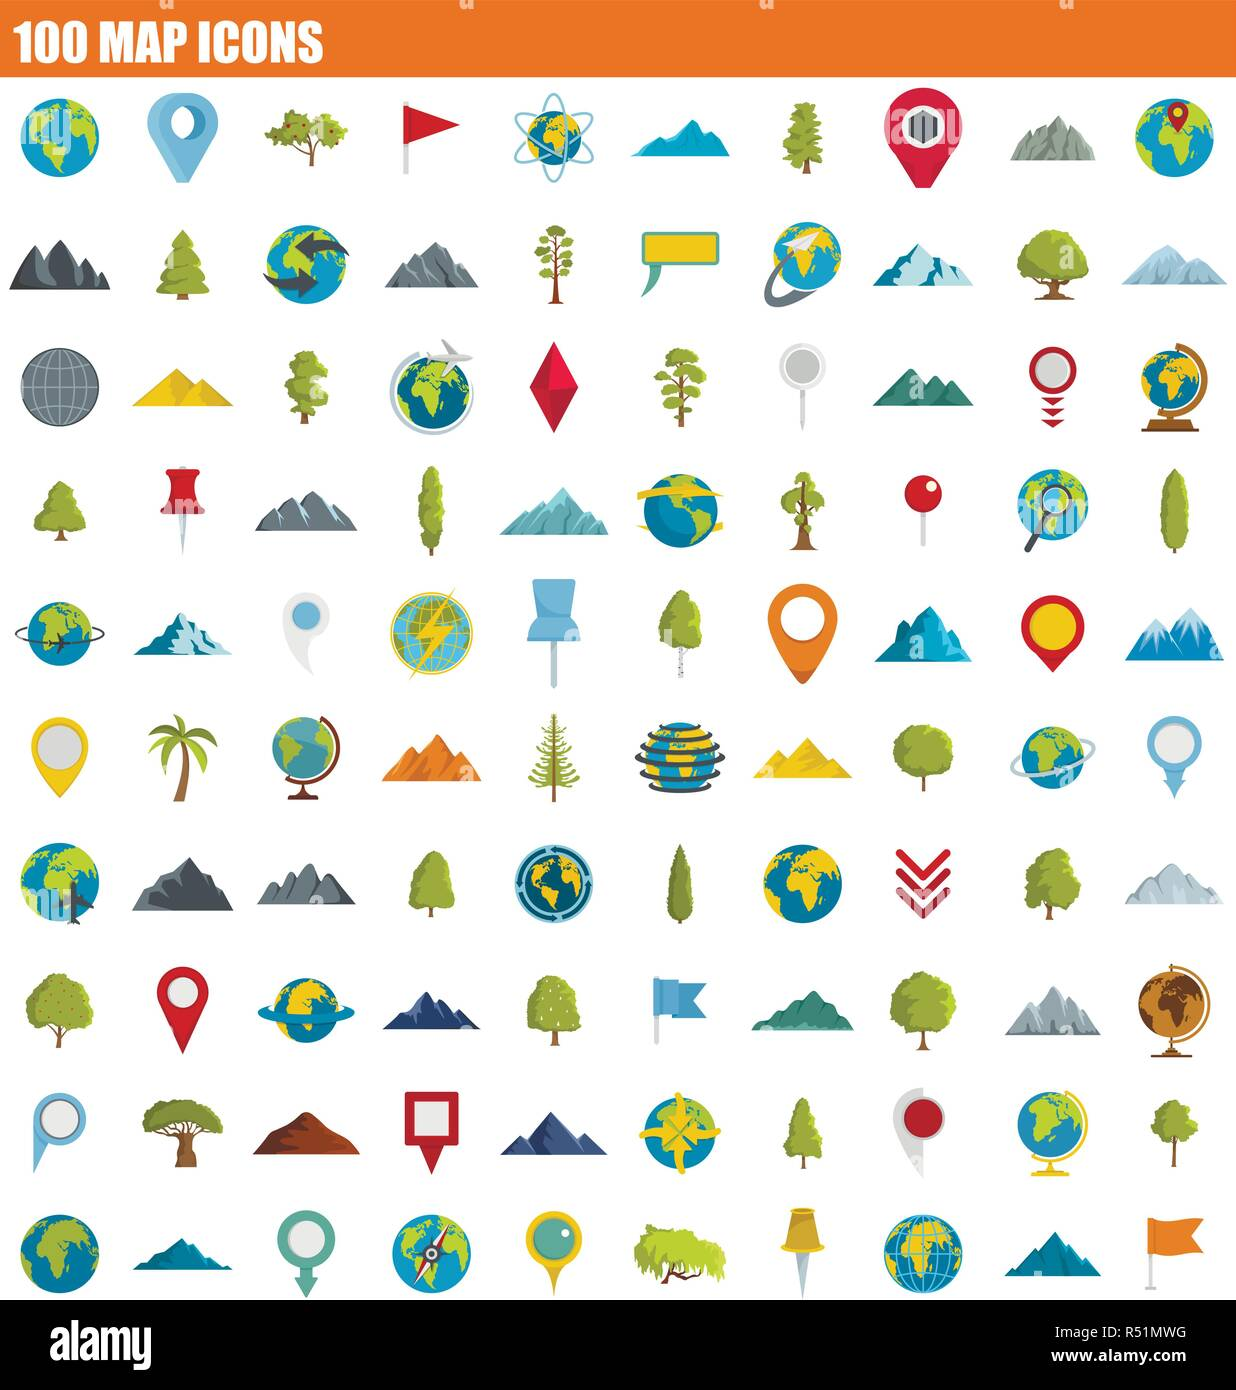 100 map icon set. Flat set of 100 map vector icons for web ... Map Icons on map of all towns in nevada, map symbols, map legend, map app, map background, map banner, map builder, map pointer, map key, map marker, iphone maps, indian map, normal maps, map signs, map logo, map art, map wmf, map template, map pin black, shadow map, map pictogram, map psd, map pushpin, map to the left, portal maps, latin america map, map drive,